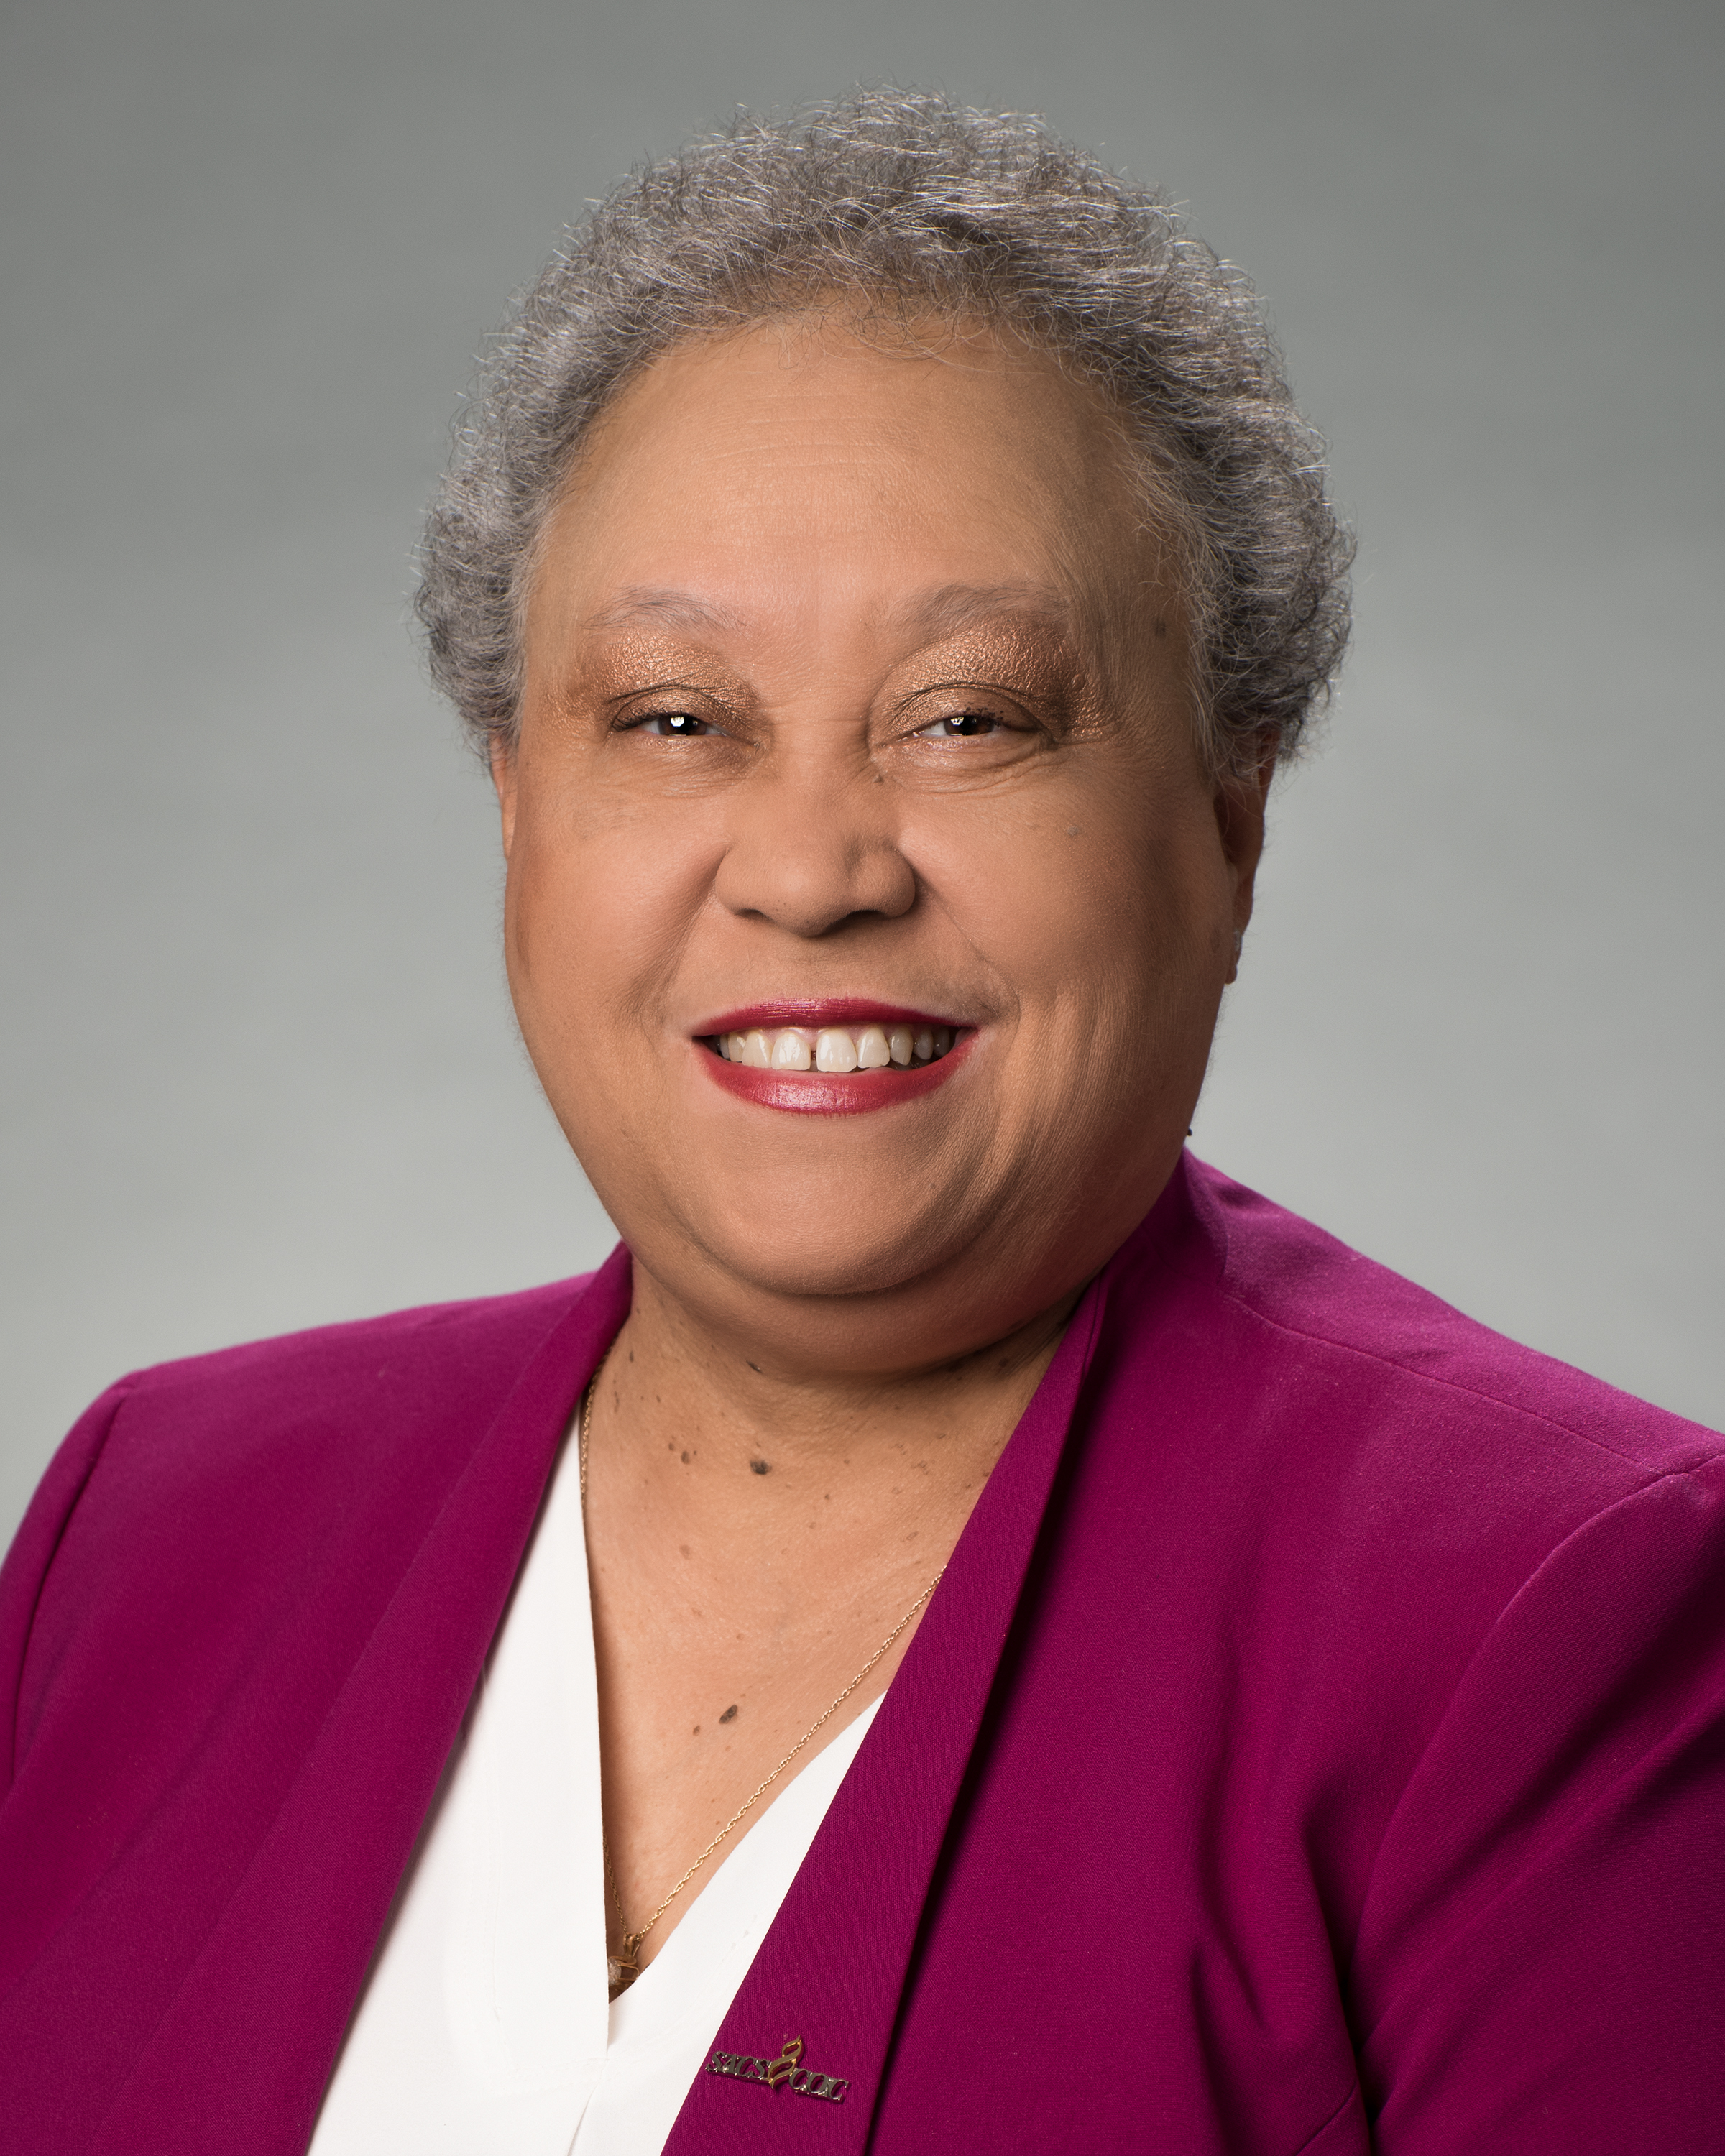 Dr. Belle S. Wheelan, Ph.D., President of the Southern Association of Colleges and Schools Commission on Colleges.